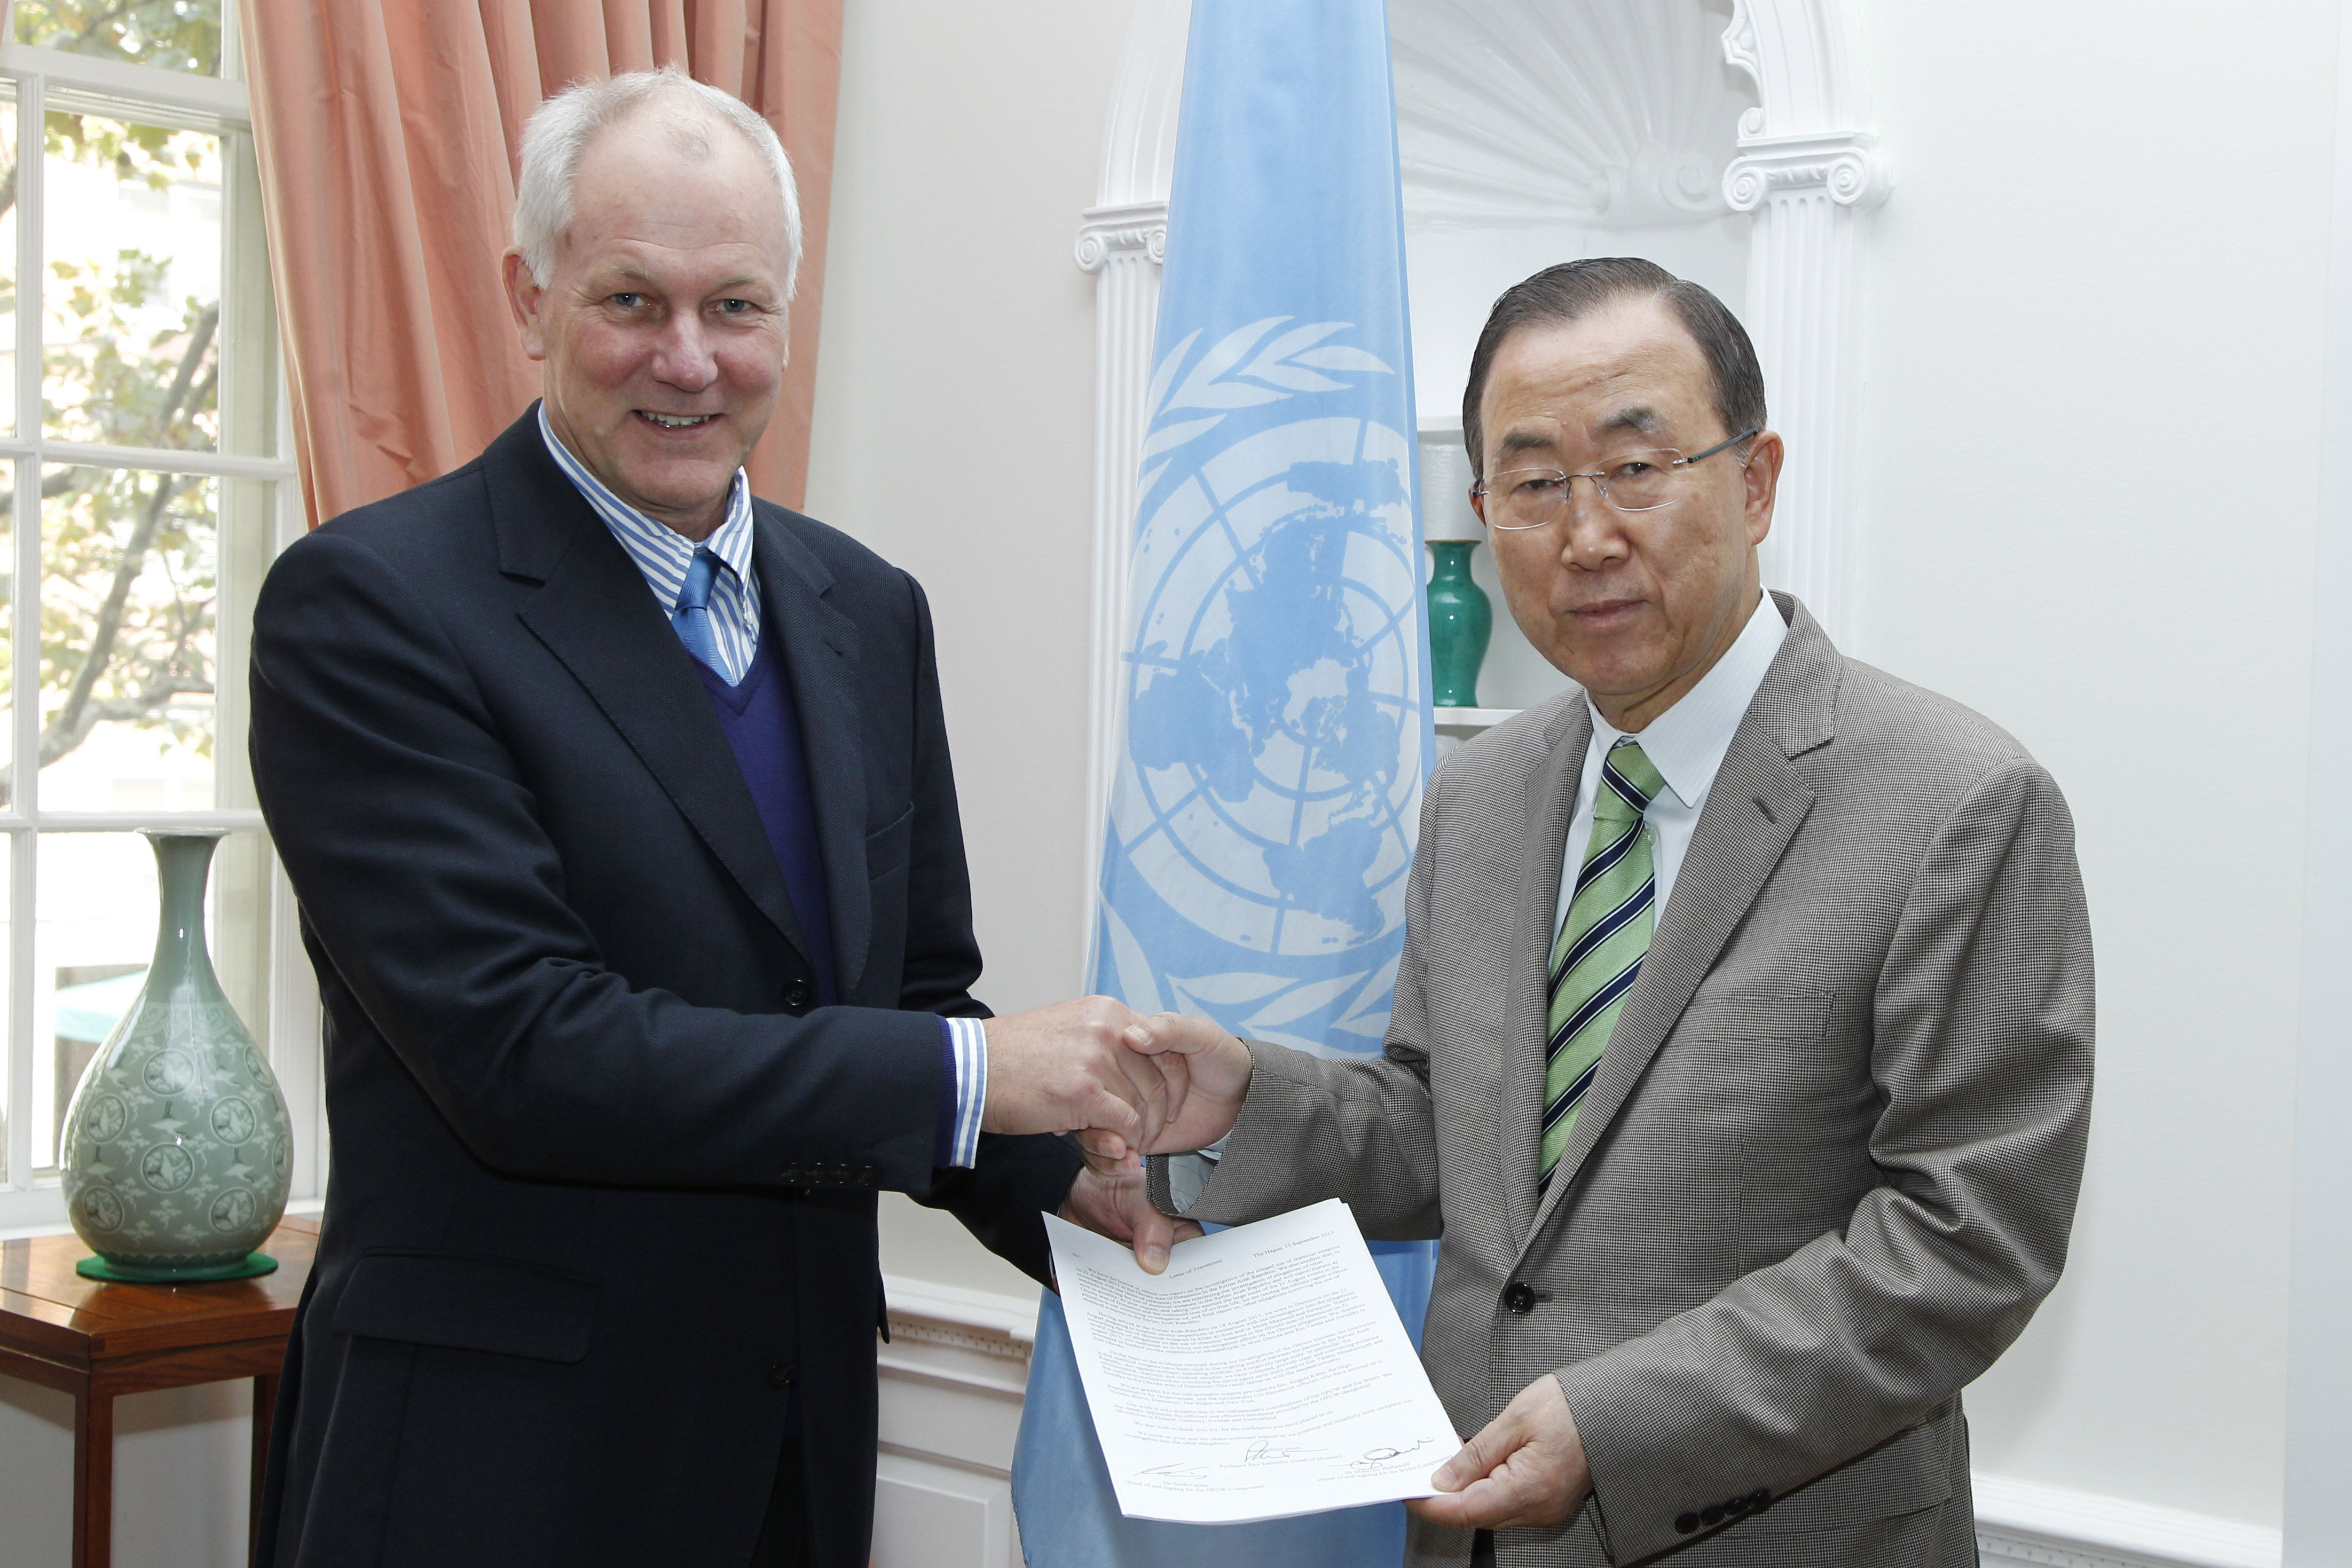 In this handout pool photo by UInited Nations shows Professor Ake Sellstrom (L), head of the chemical weapons team working in Syria, hands over the report on the 21 August 2013 Al-Ghouta massacre to Secretary-General Ban Ki-moon in New York on September 15, 2013. (AFP PHOTO / UN Photo / Paulo FILGUEIRAWS / POOL)